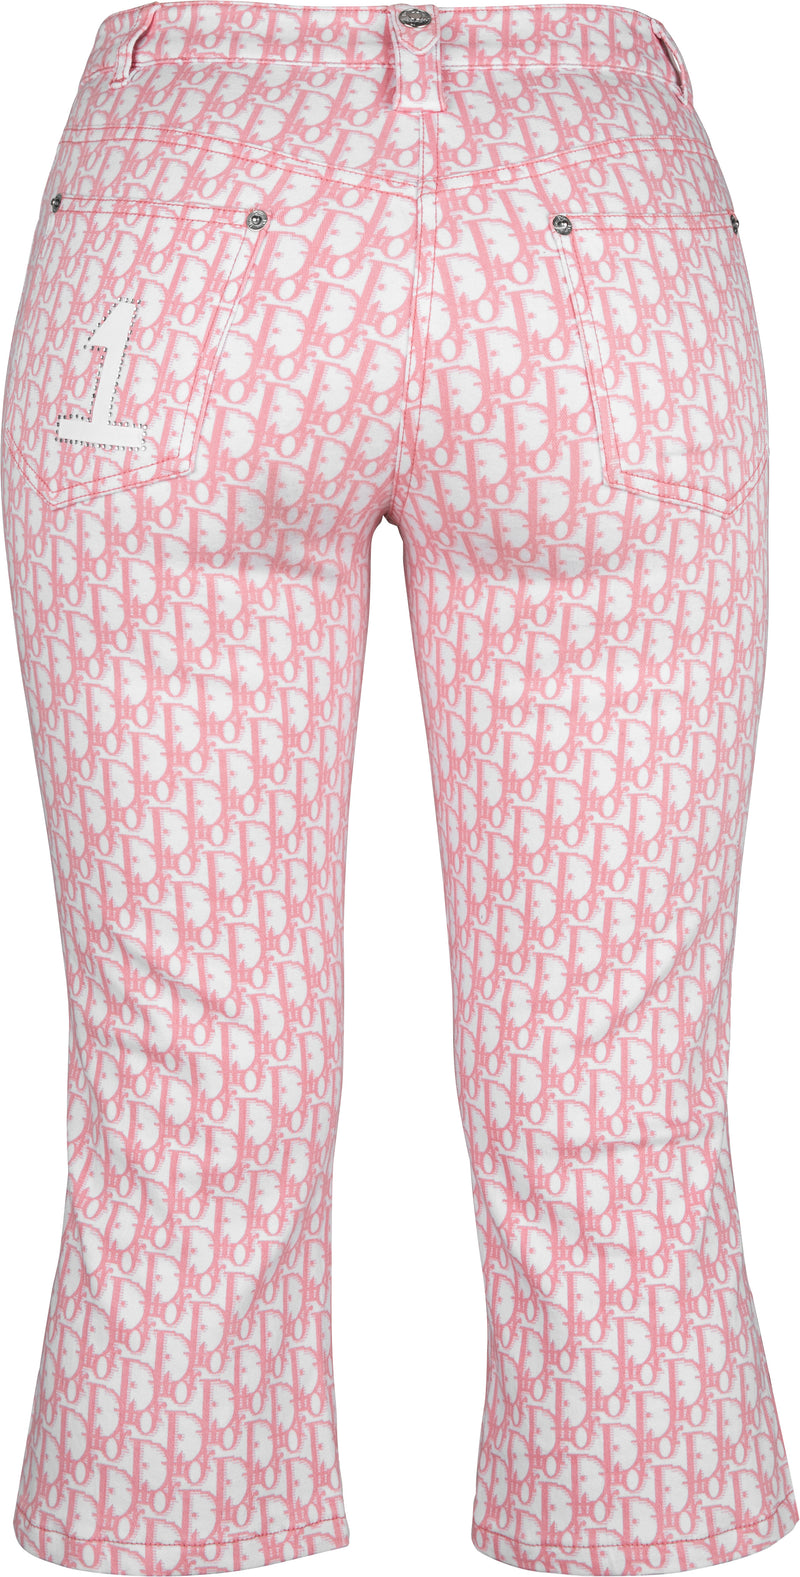 Christian Dior Diorissimo Girly Embellished Cropped Pants